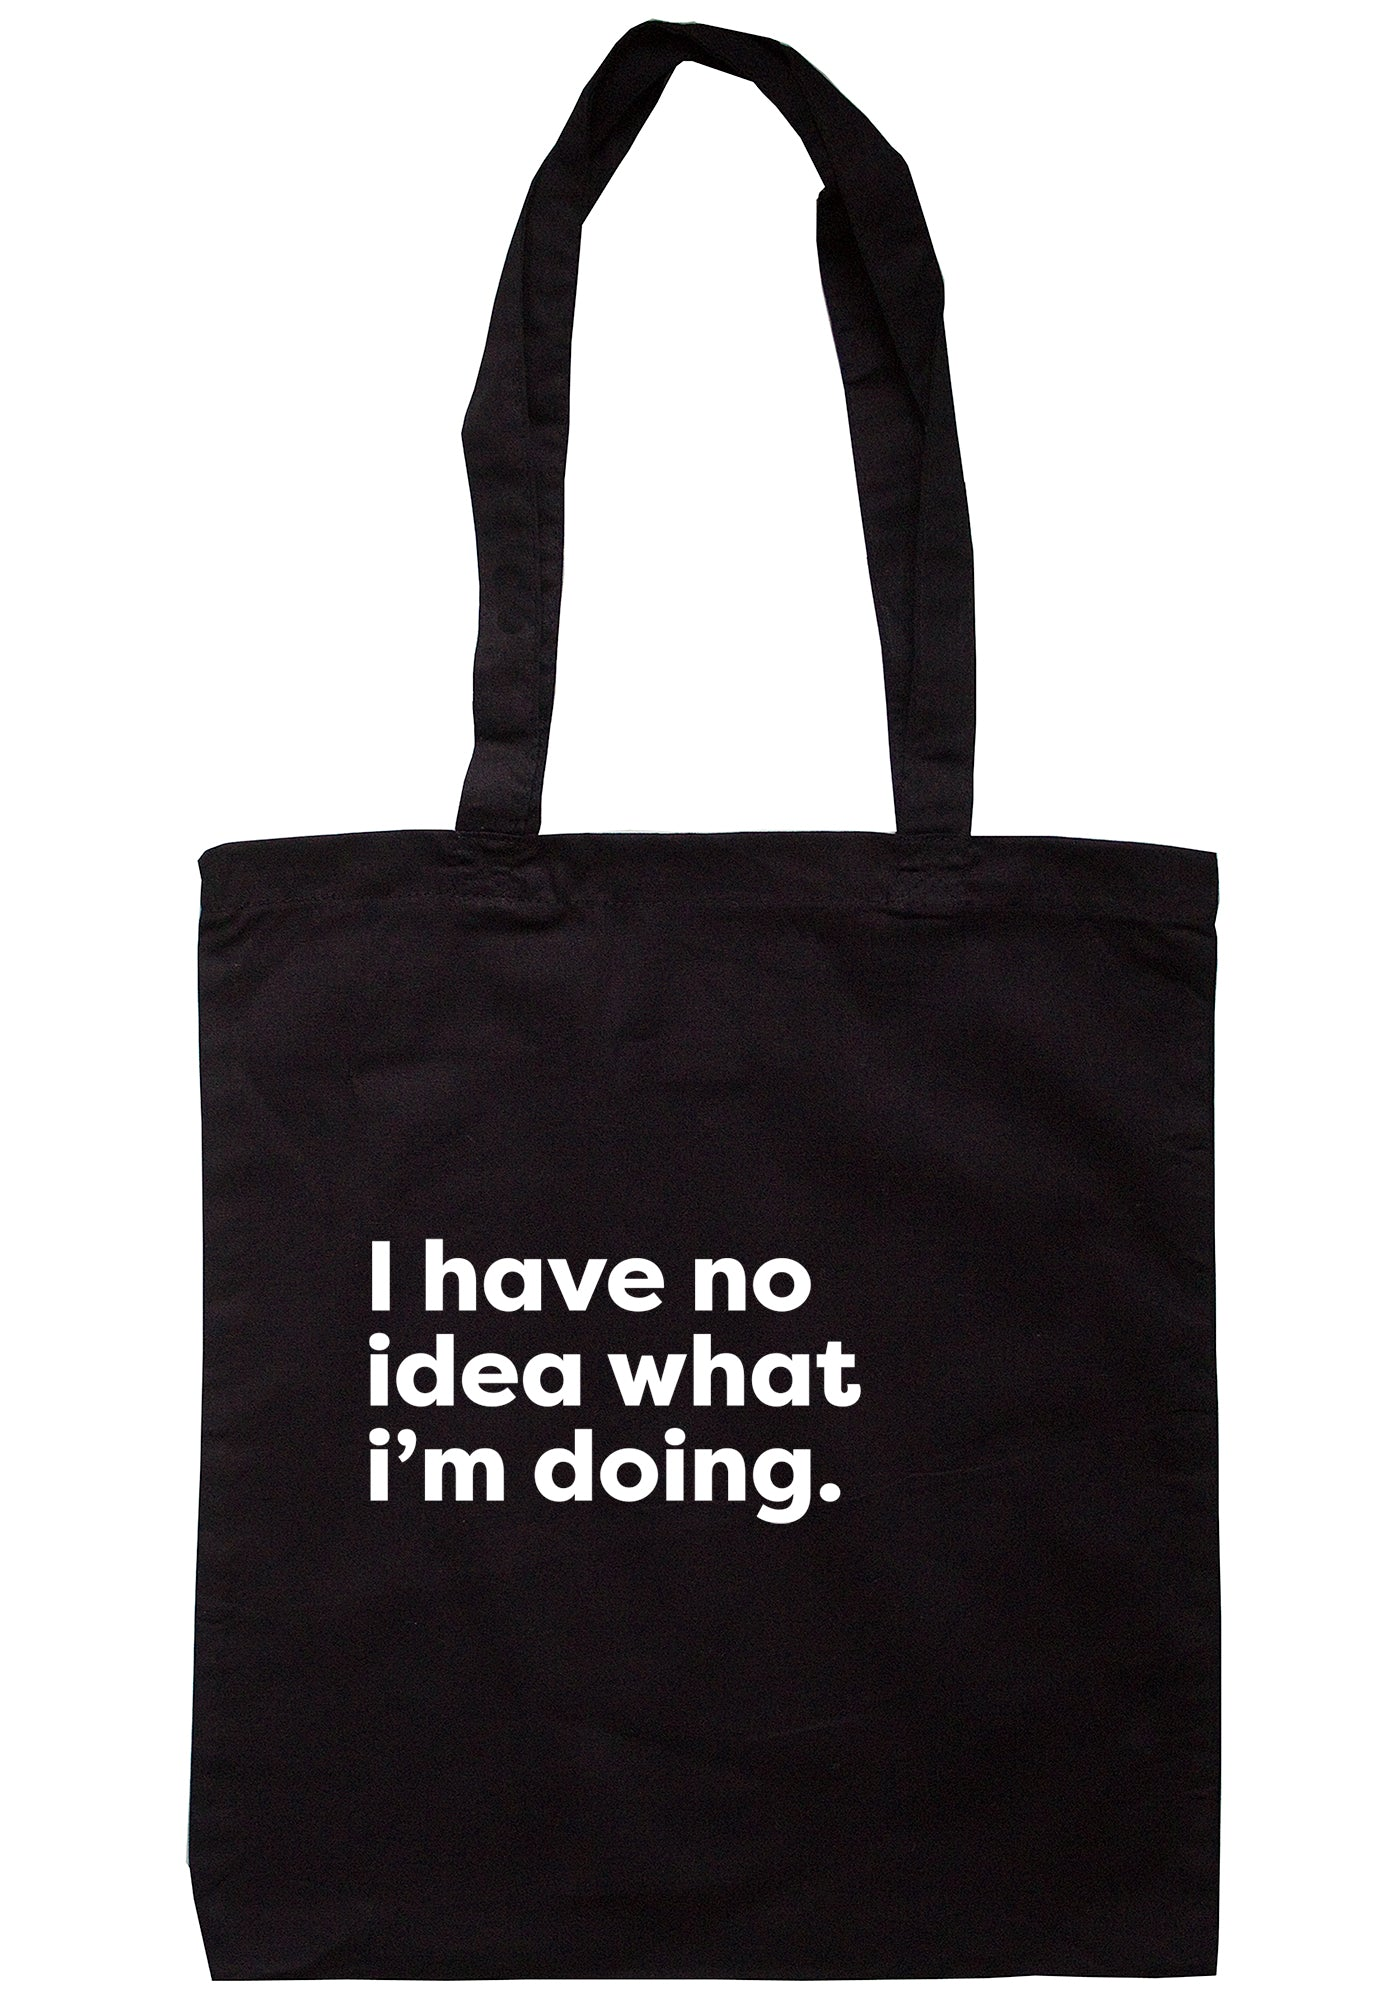 I Have No Idea What I'm Doing Tote Bag K2546 - Illustrated Identity Ltd.